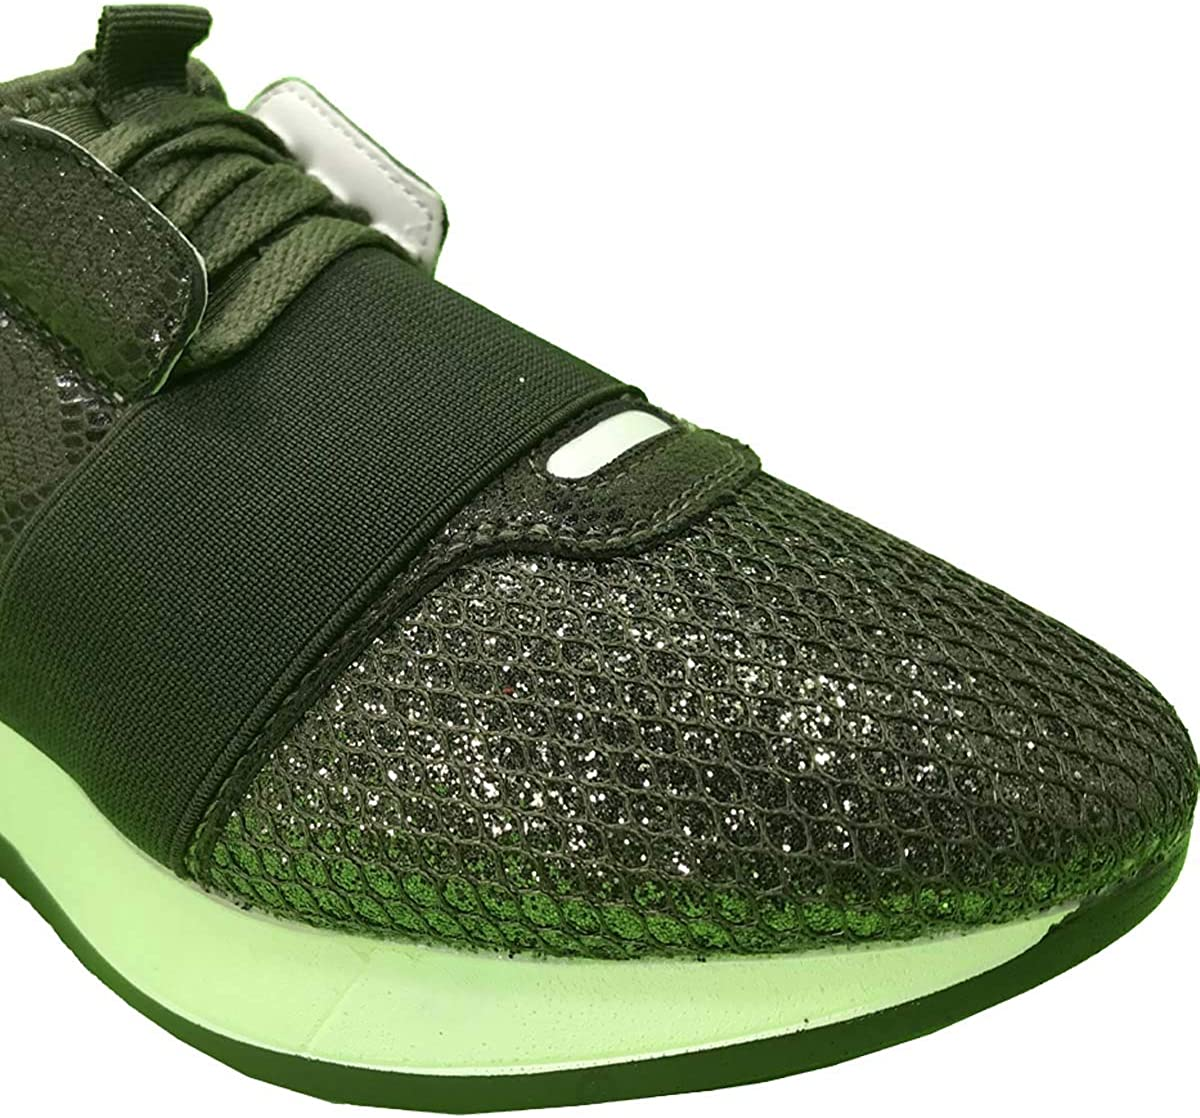 Krazy Shoe Artists Republic Womens Shiny Exotic Upper Olive Lace up Fashion Sneaker